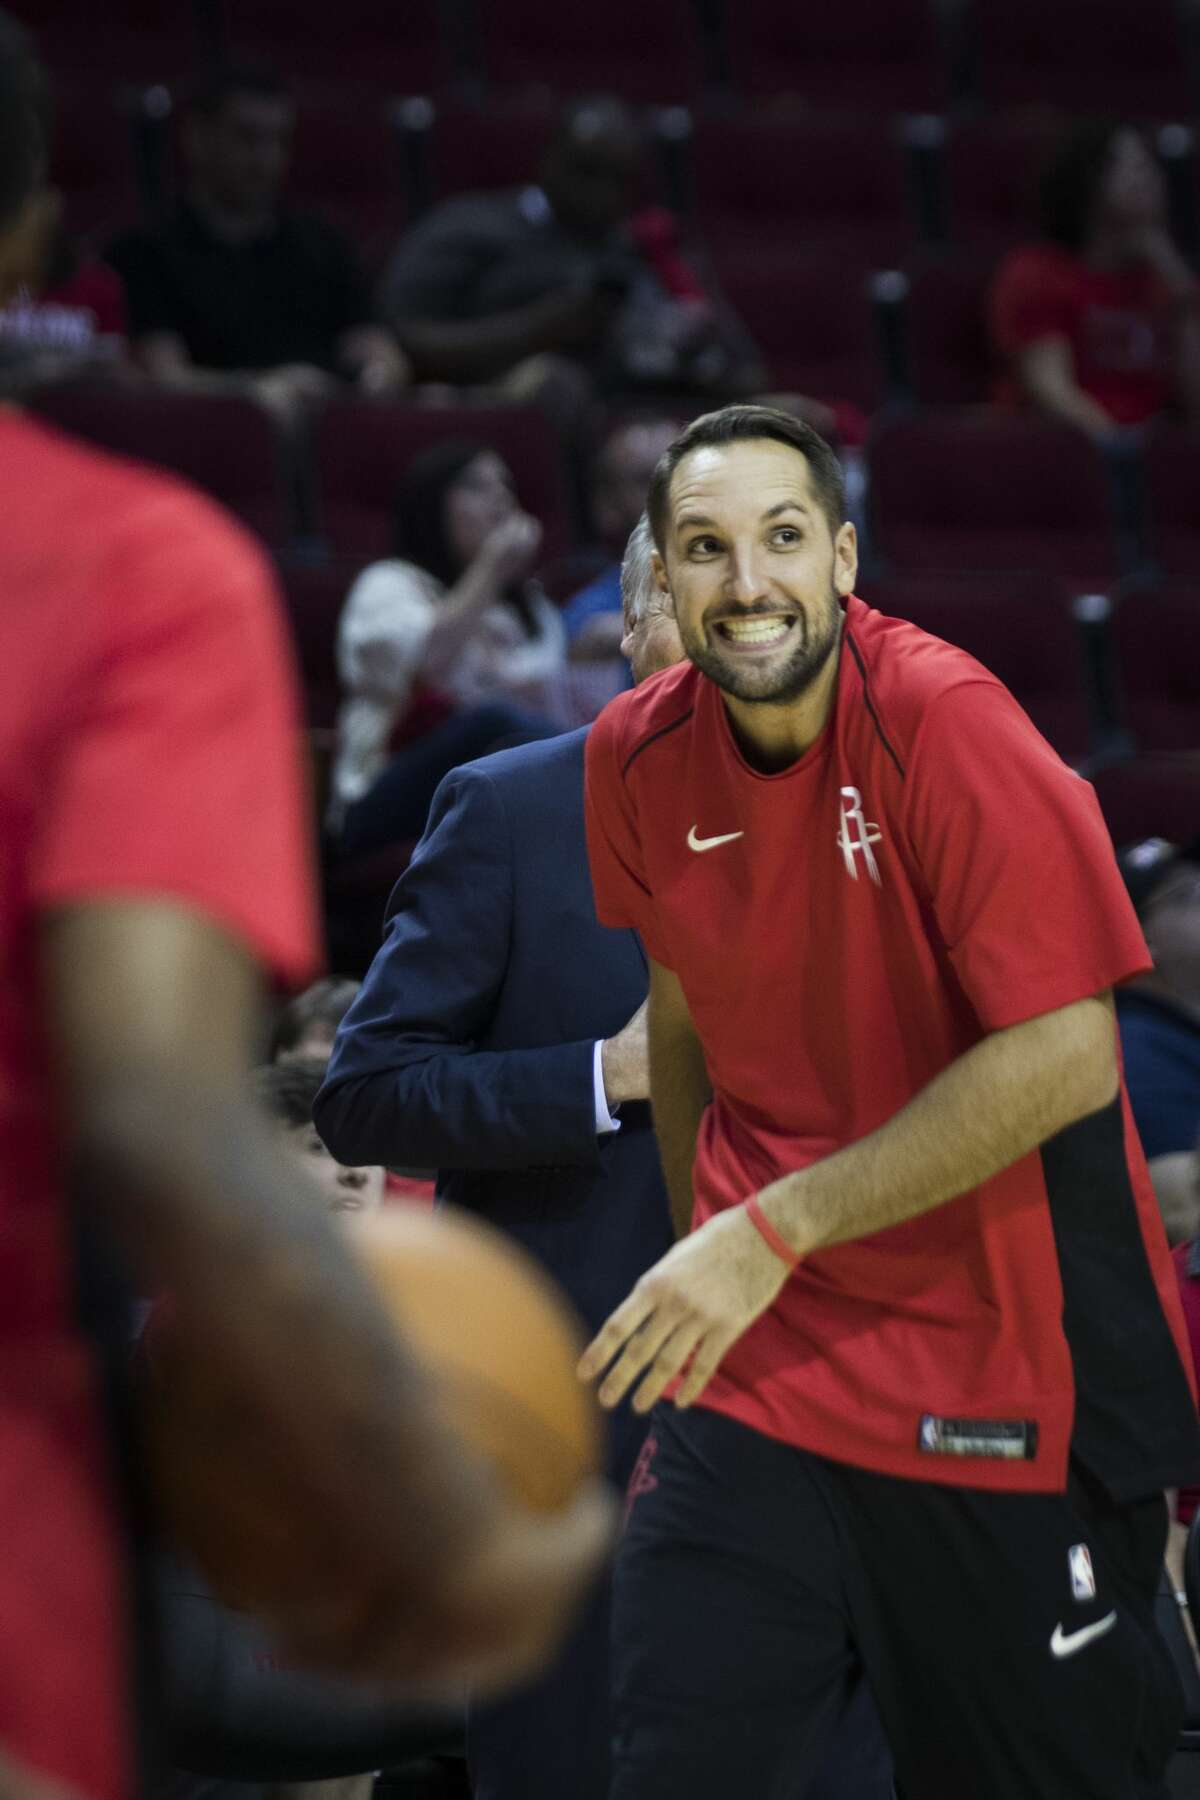 Houston Rockets forward Ryan Anderson (33) goofs around while warming up before the game against the Dallas Mavericks, Saturday, Oct. 21, 2017, at the Toyota Center in Houston. ( Marie D. De Jesus / Houston Chronicle )